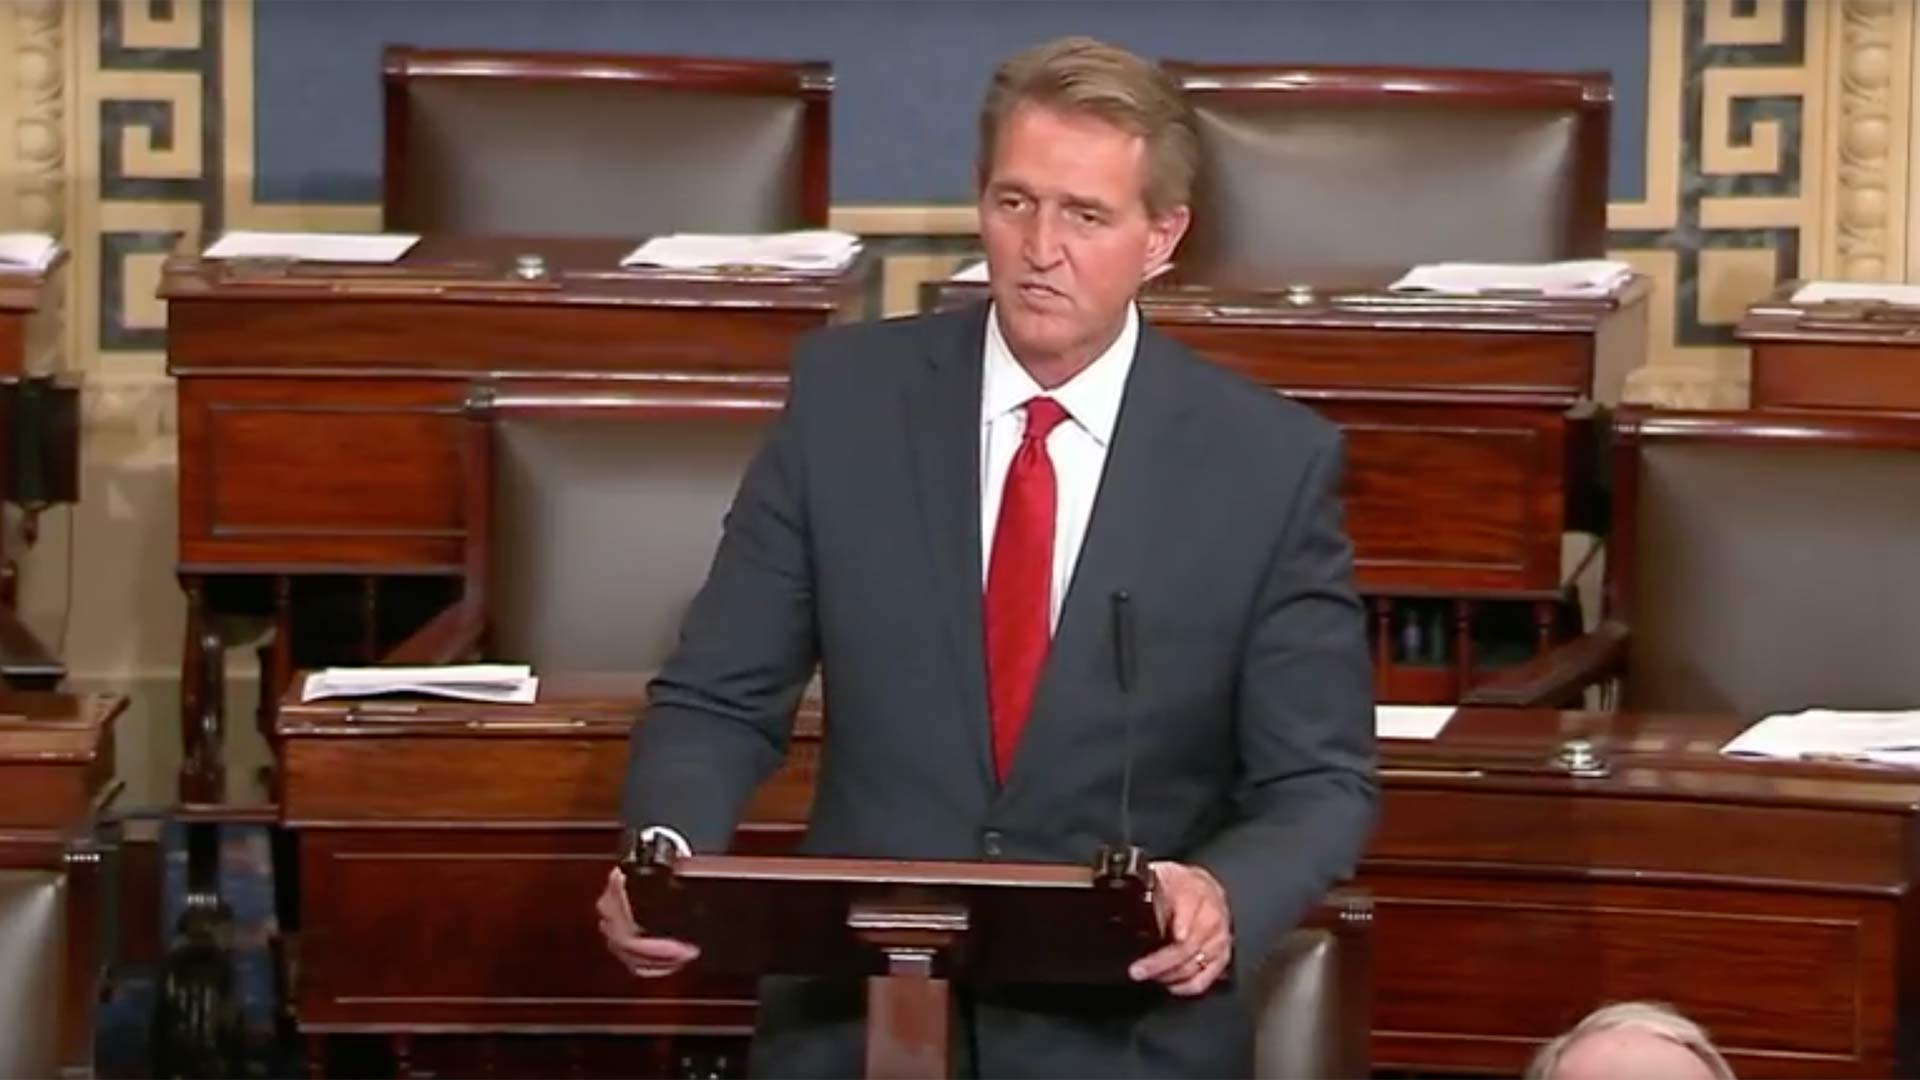 U.S. Sen. Jeff Flake of Arizona speaking about Trump administration tariffs, June 7, 2018.